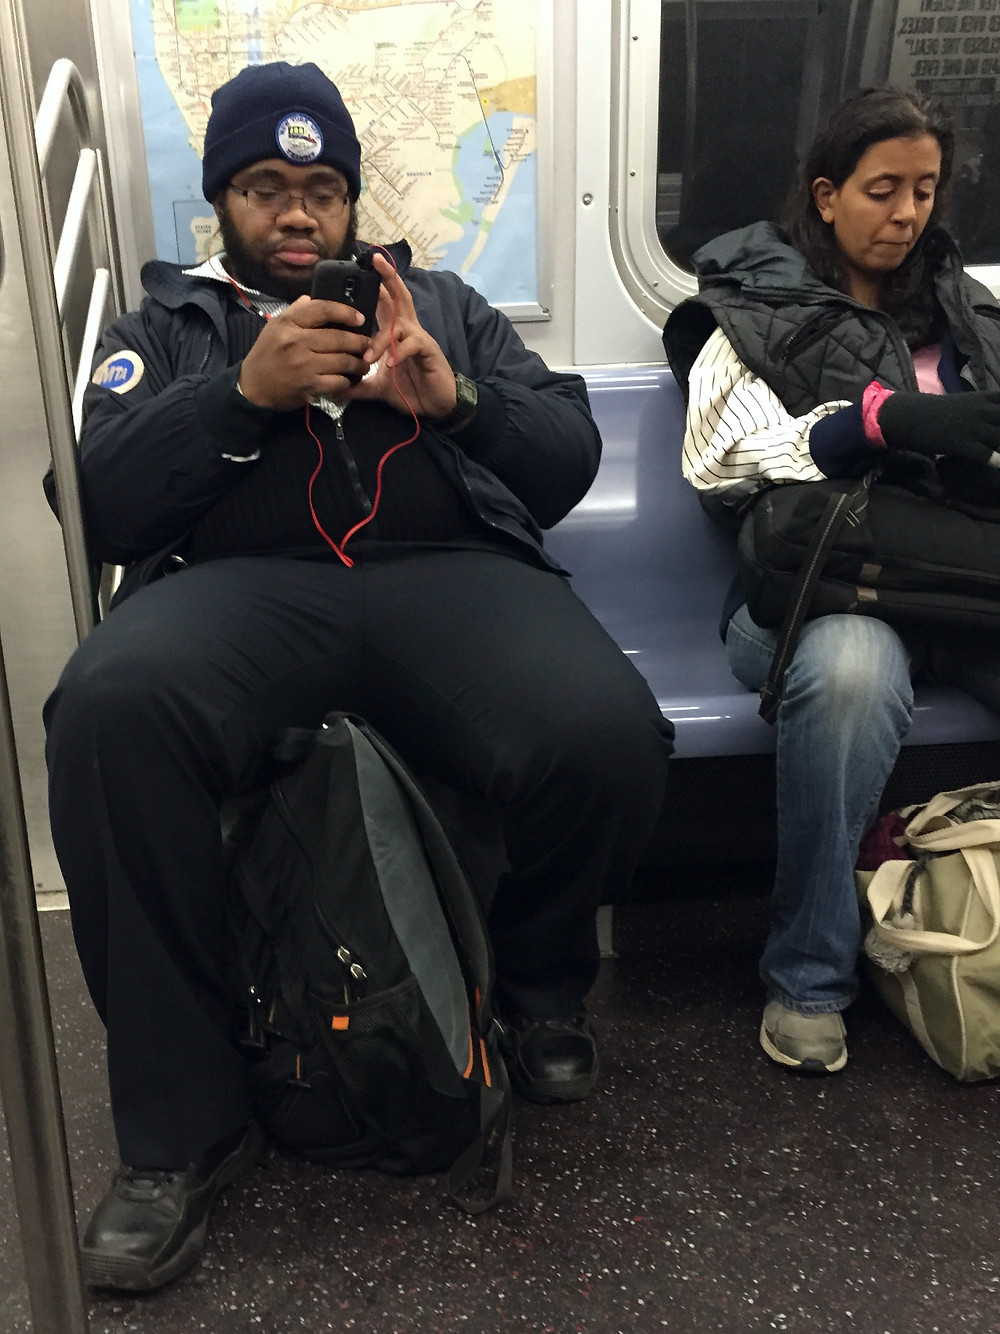 MTA employee manspreading in NYC despite the MTA's courtesy counts campaign #1